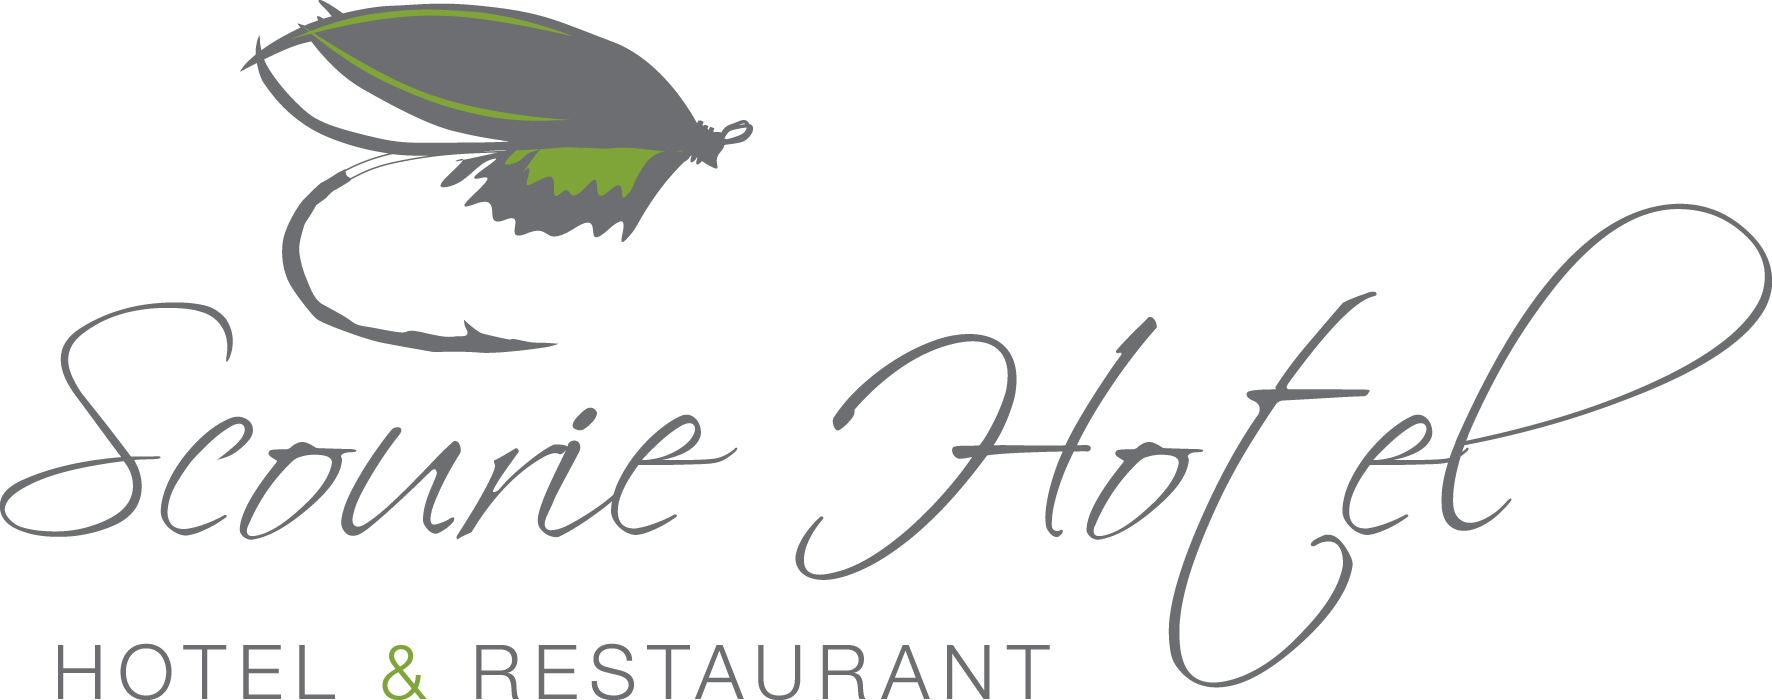 Logo of Scourie Hotel